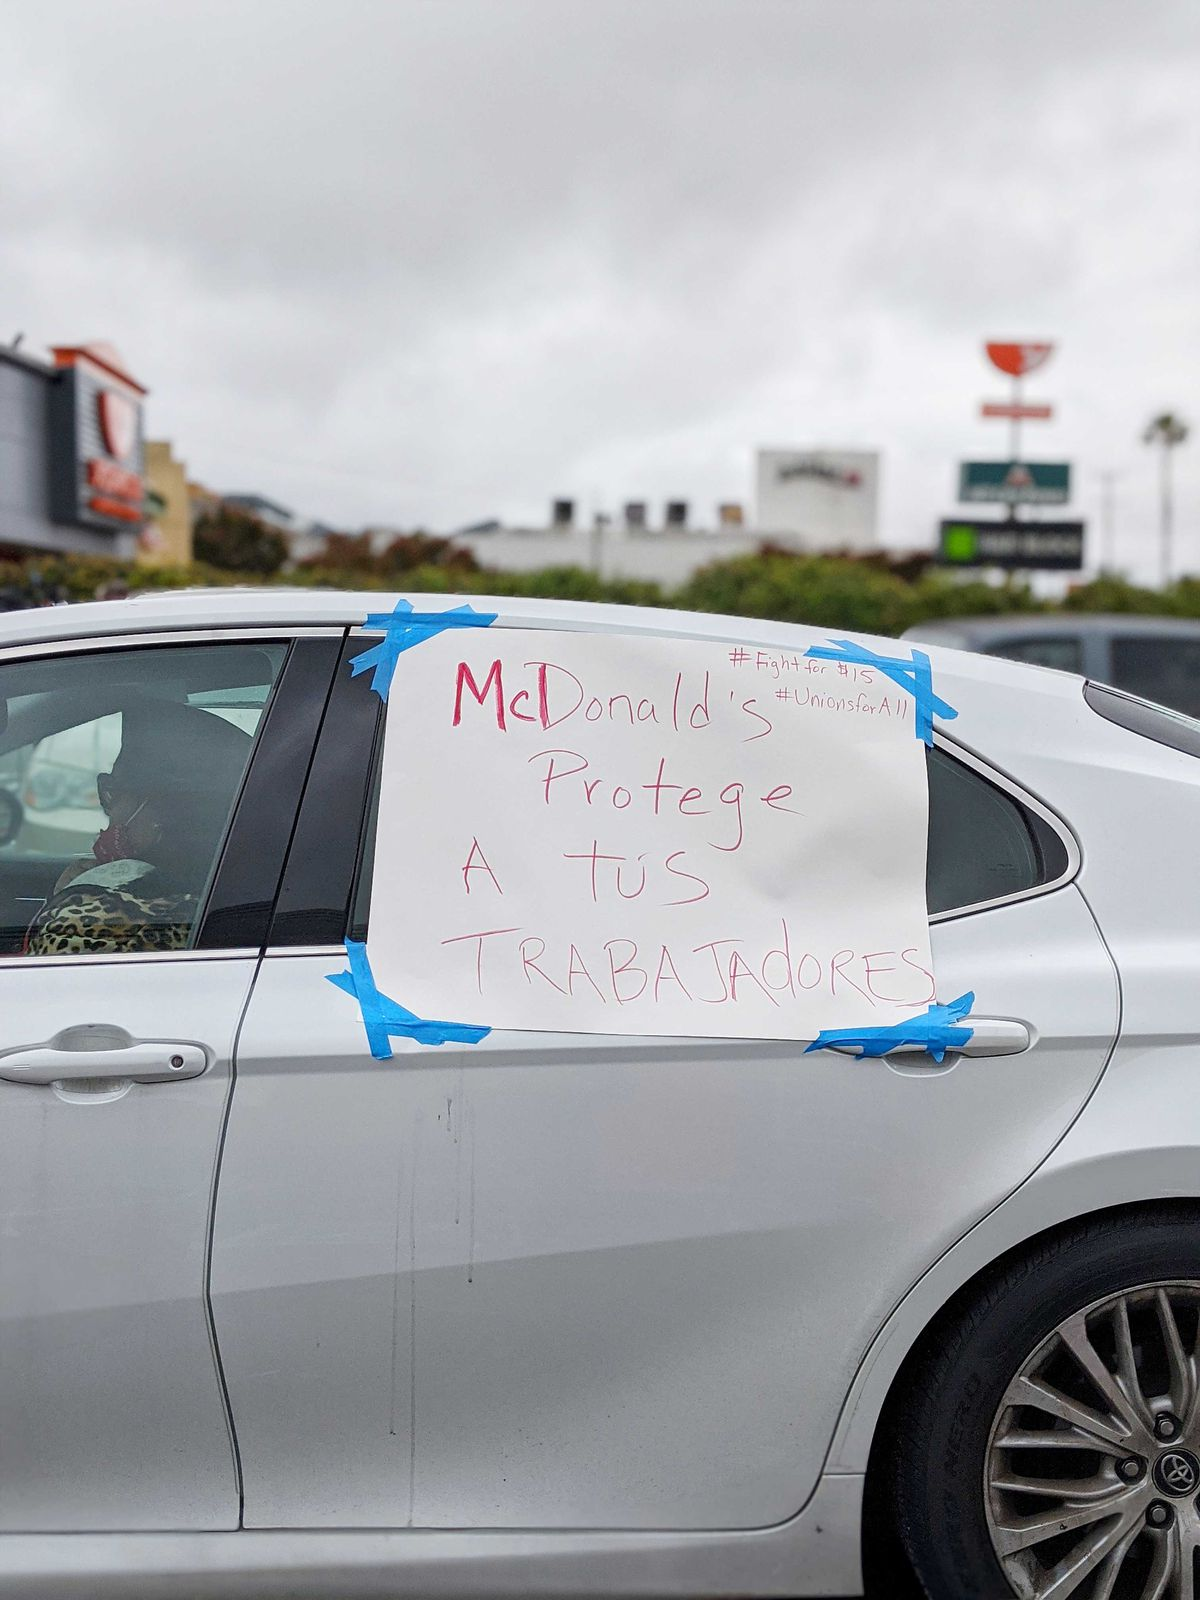 Protest sign taped to a car in Spanish at a South LA McDonald's on April 6, 2020